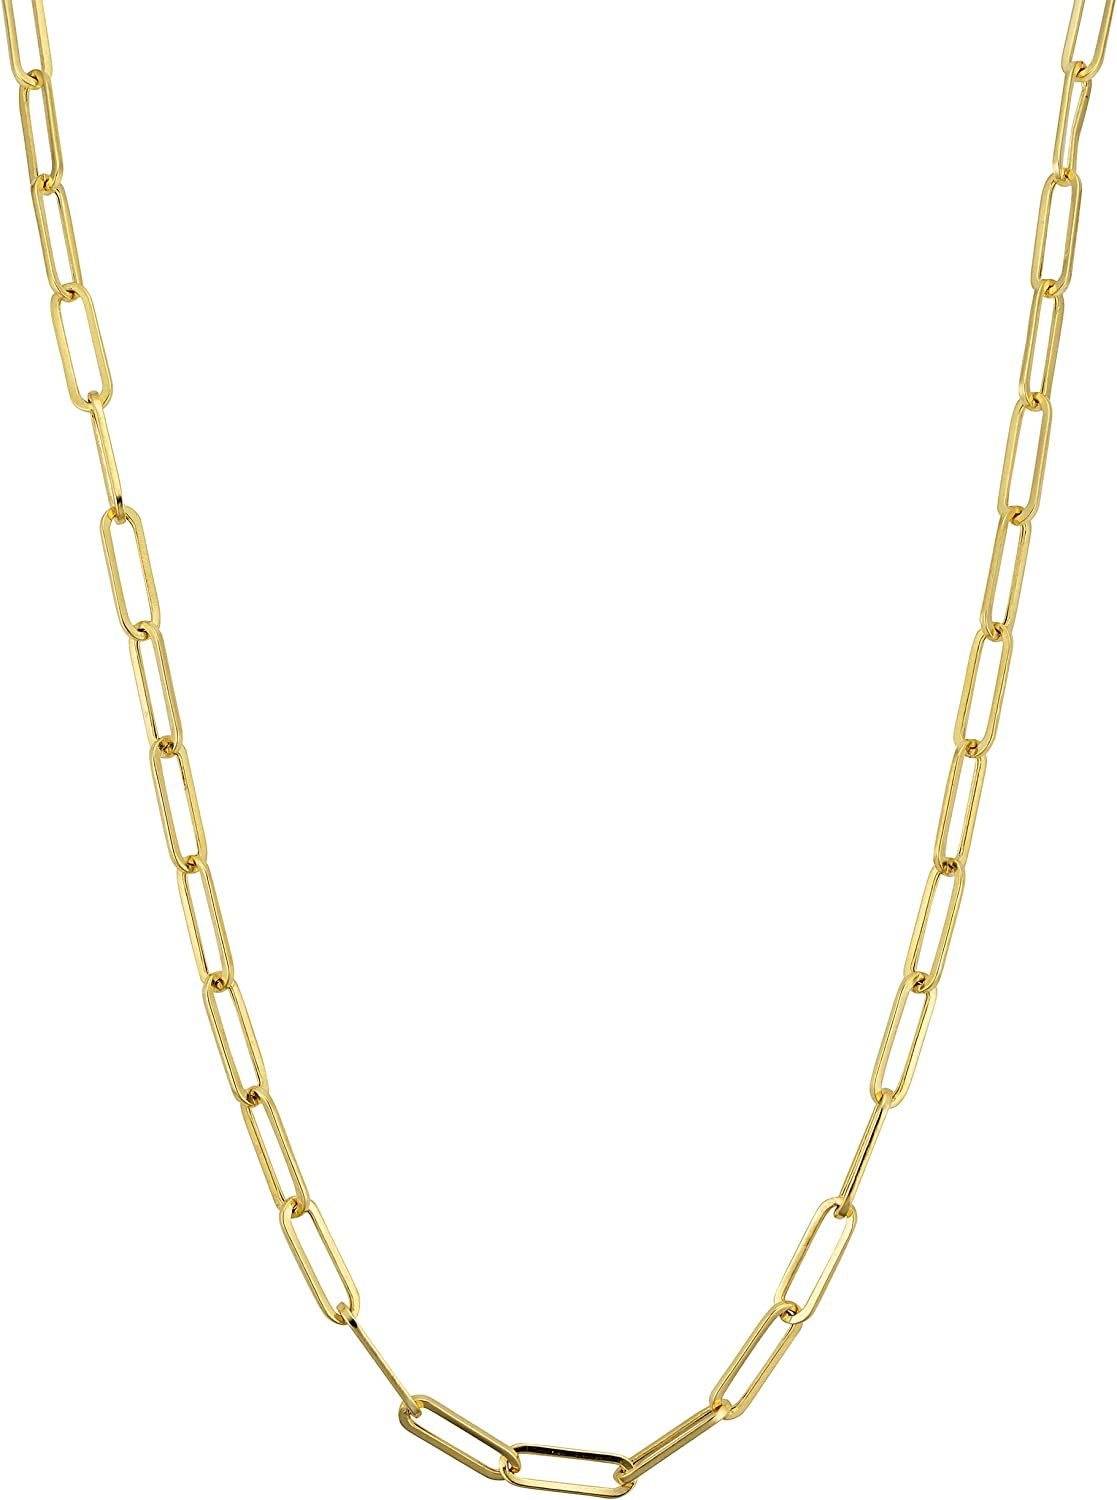 Amanda Rose 14k Yellow Gold 3 mm Paperclip Chain Necklace for Women (Choose your length)